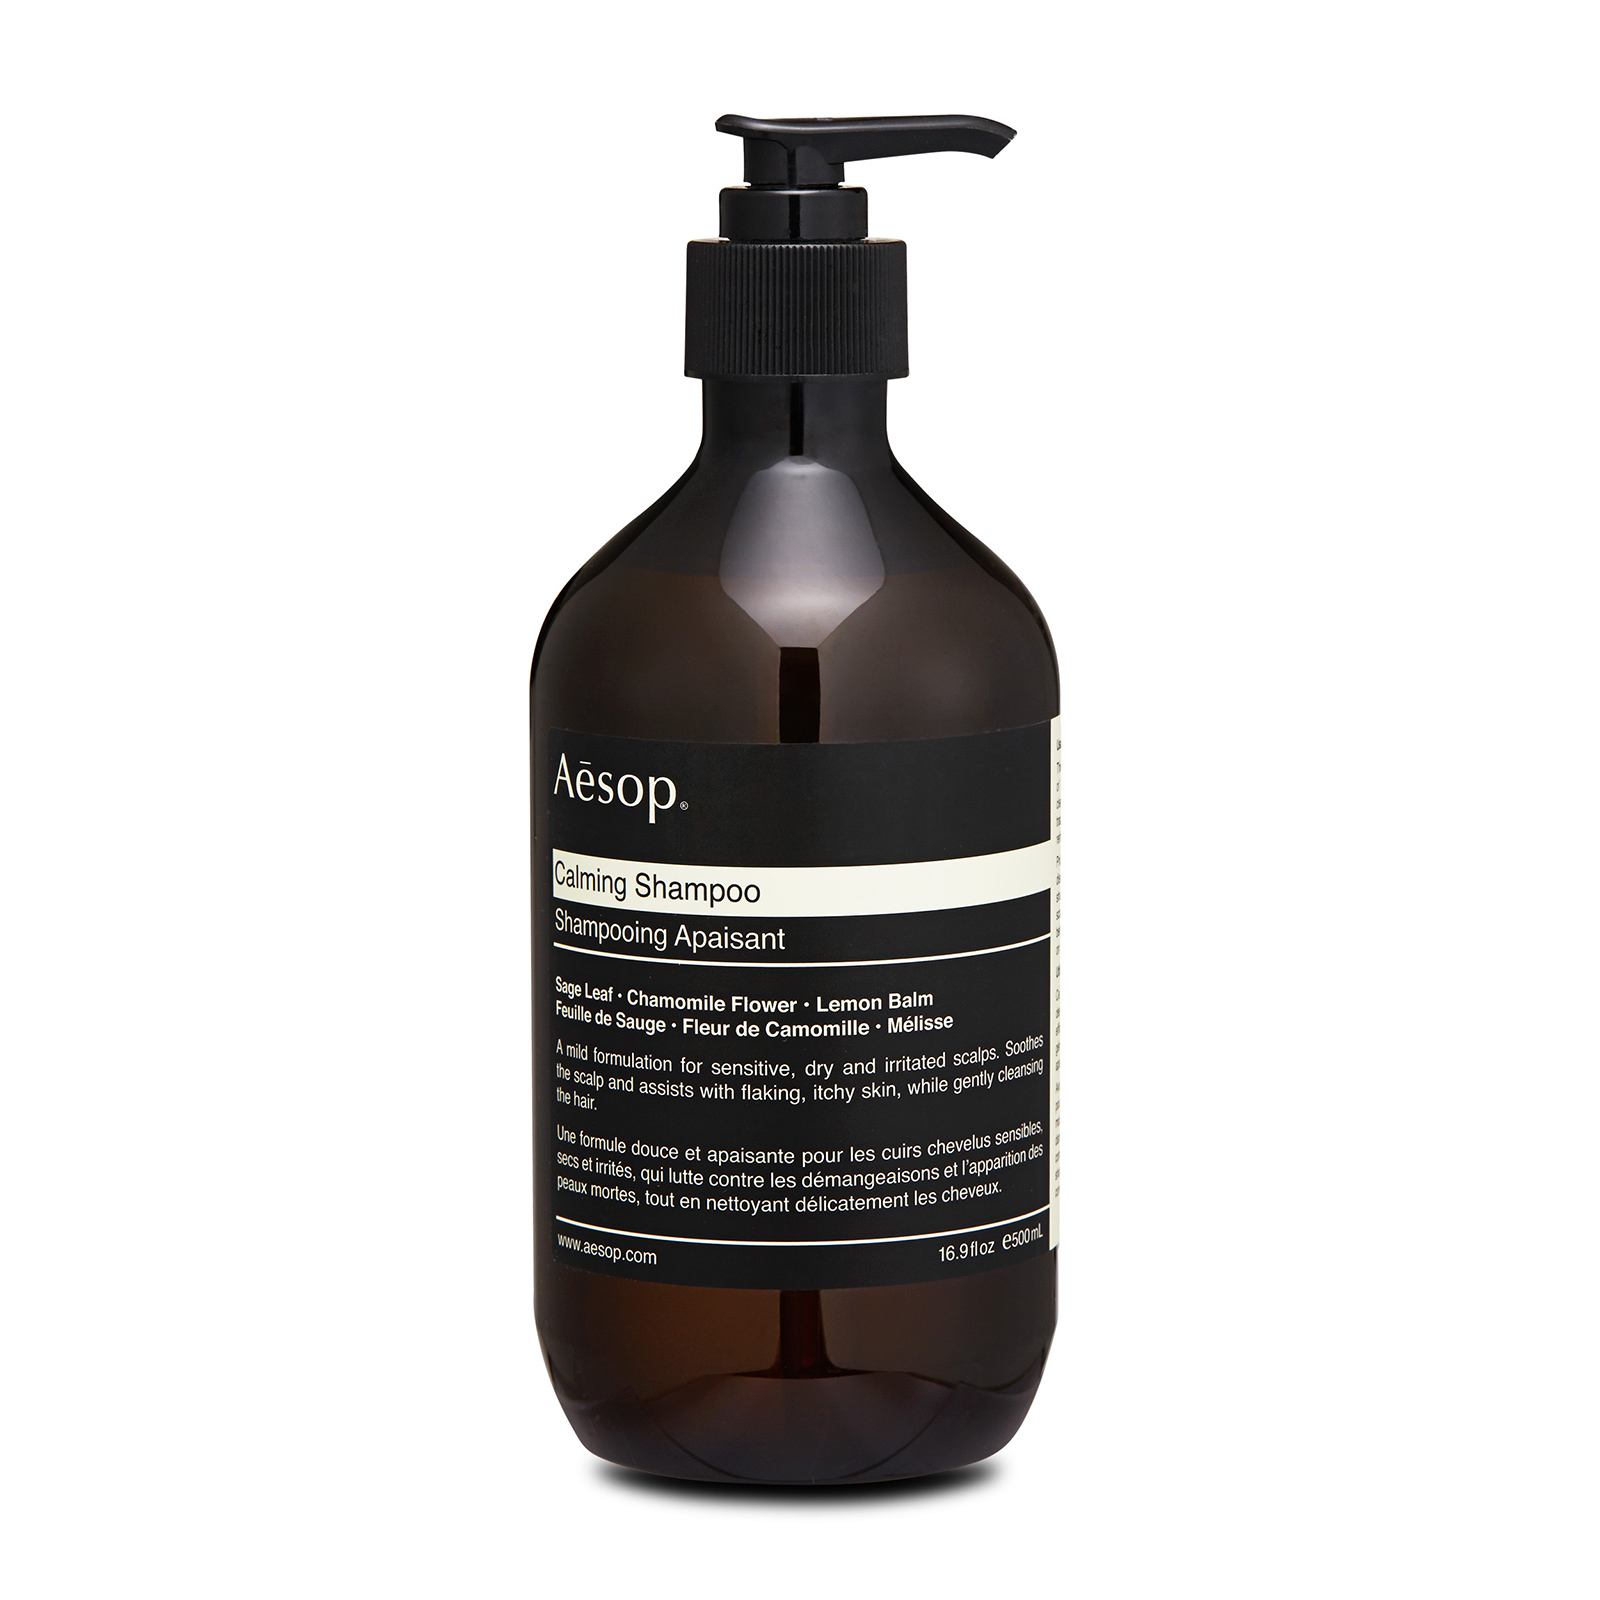 Aesop Calming Shampoo has the following feaetures: Formulated with a gentle blend of botanically based ingredients targets flaking, itchy scalps to assuage irritation while effectively cleansing hair. The ideal shampoo for those with sensitive scalps prone to irritation.  Without the inclusion of ingredients  that traditionally cause irritation. The scalp will be calmed and refreshed. Also reduces irritation and balances sensitive scalps. Contains sage leaf extracts to provide a efficient treatment of hair loss by stimulating hair growth. It can also make your hair manageable and improve its texture, giving you a shiny, soft and healthy hair.